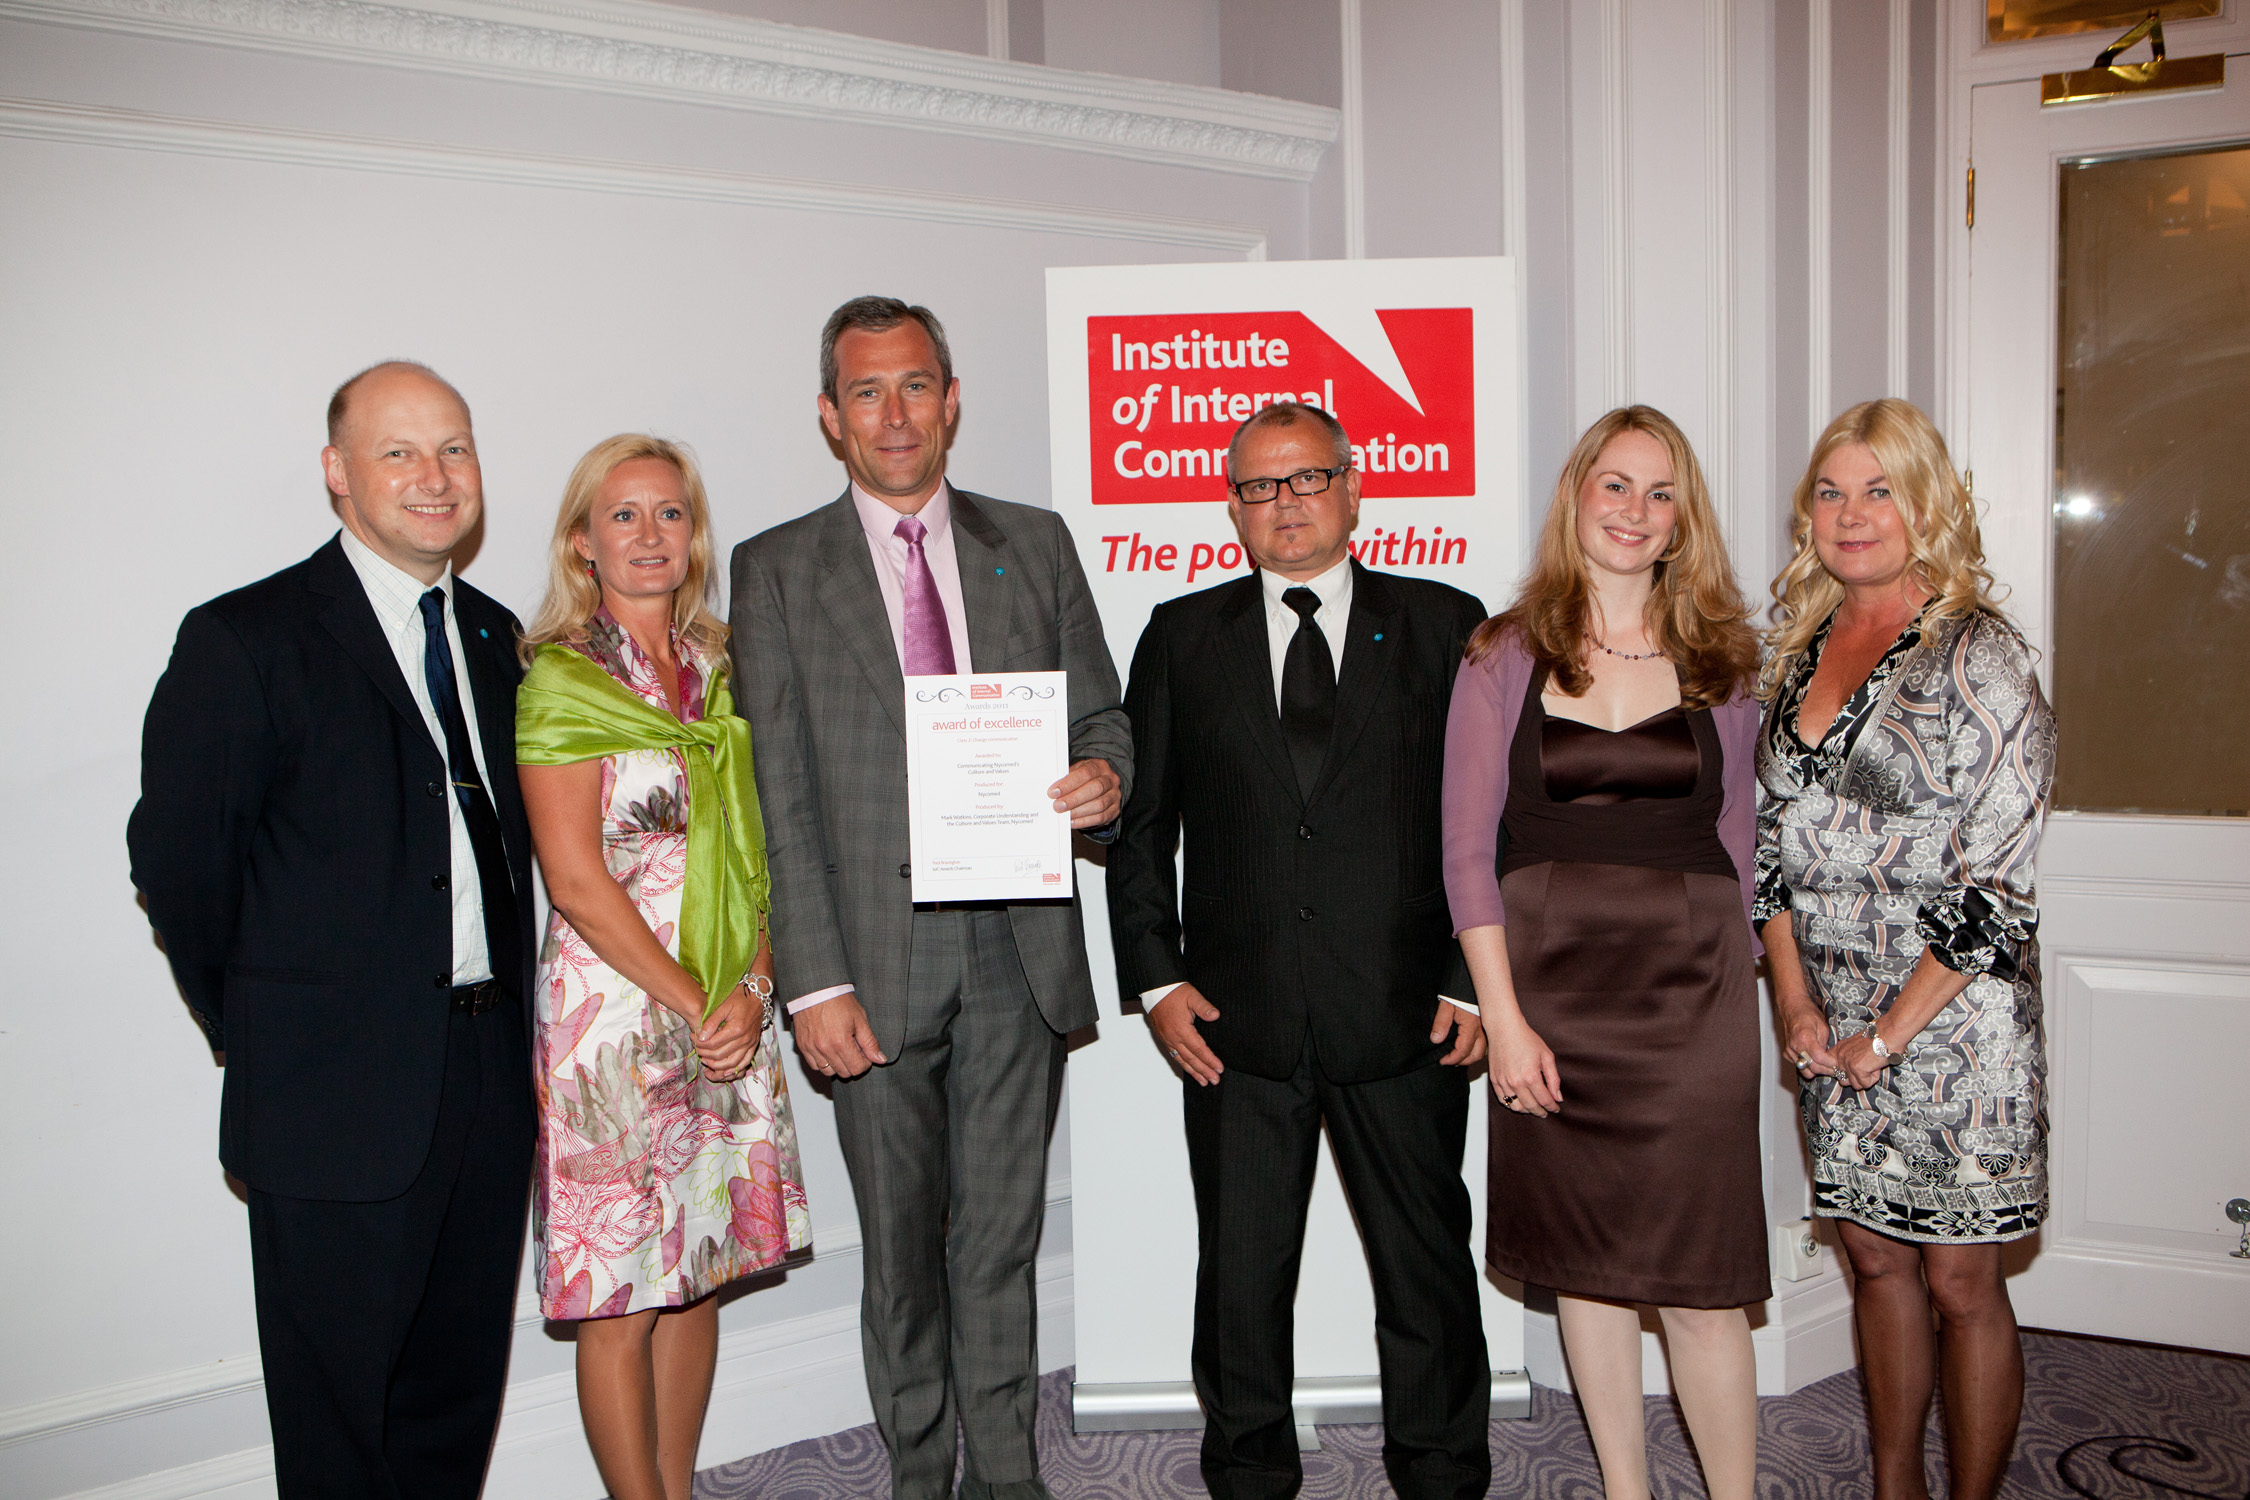 Mark Watkins (left) with the Takeda HR team at the IOIC Awards in 2011.